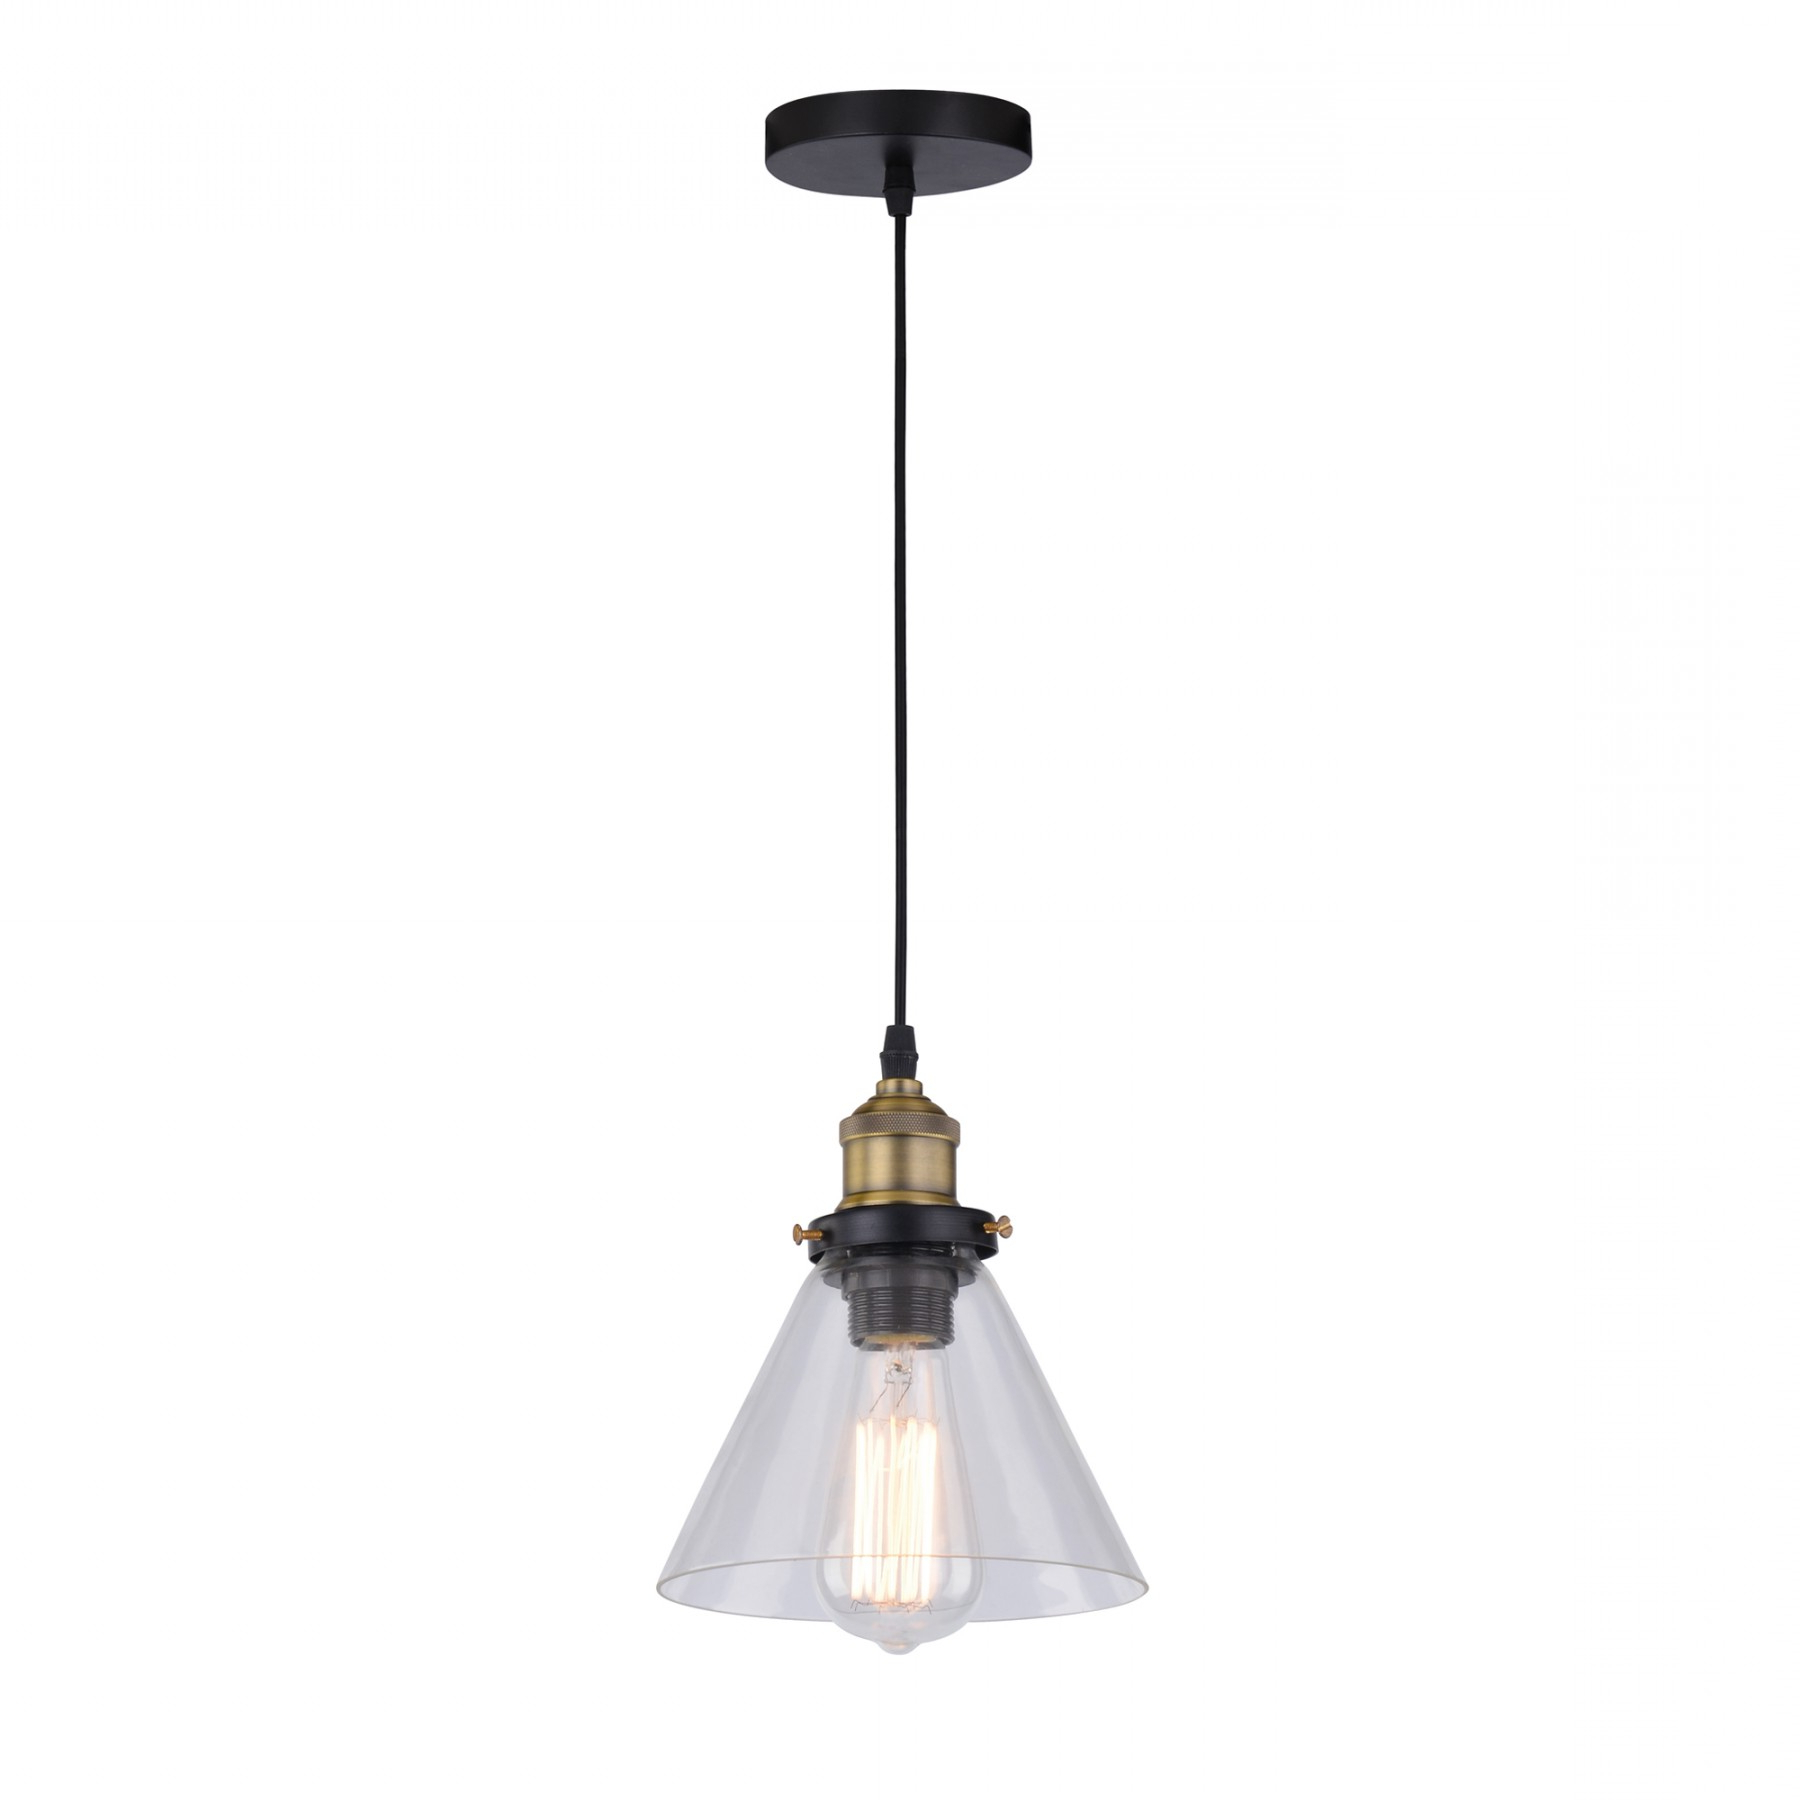 Britop Conrad Cone Ceiling Pendant Light Throughout Famous Guro 1 Light Cone Pendants (View 5 of 25)